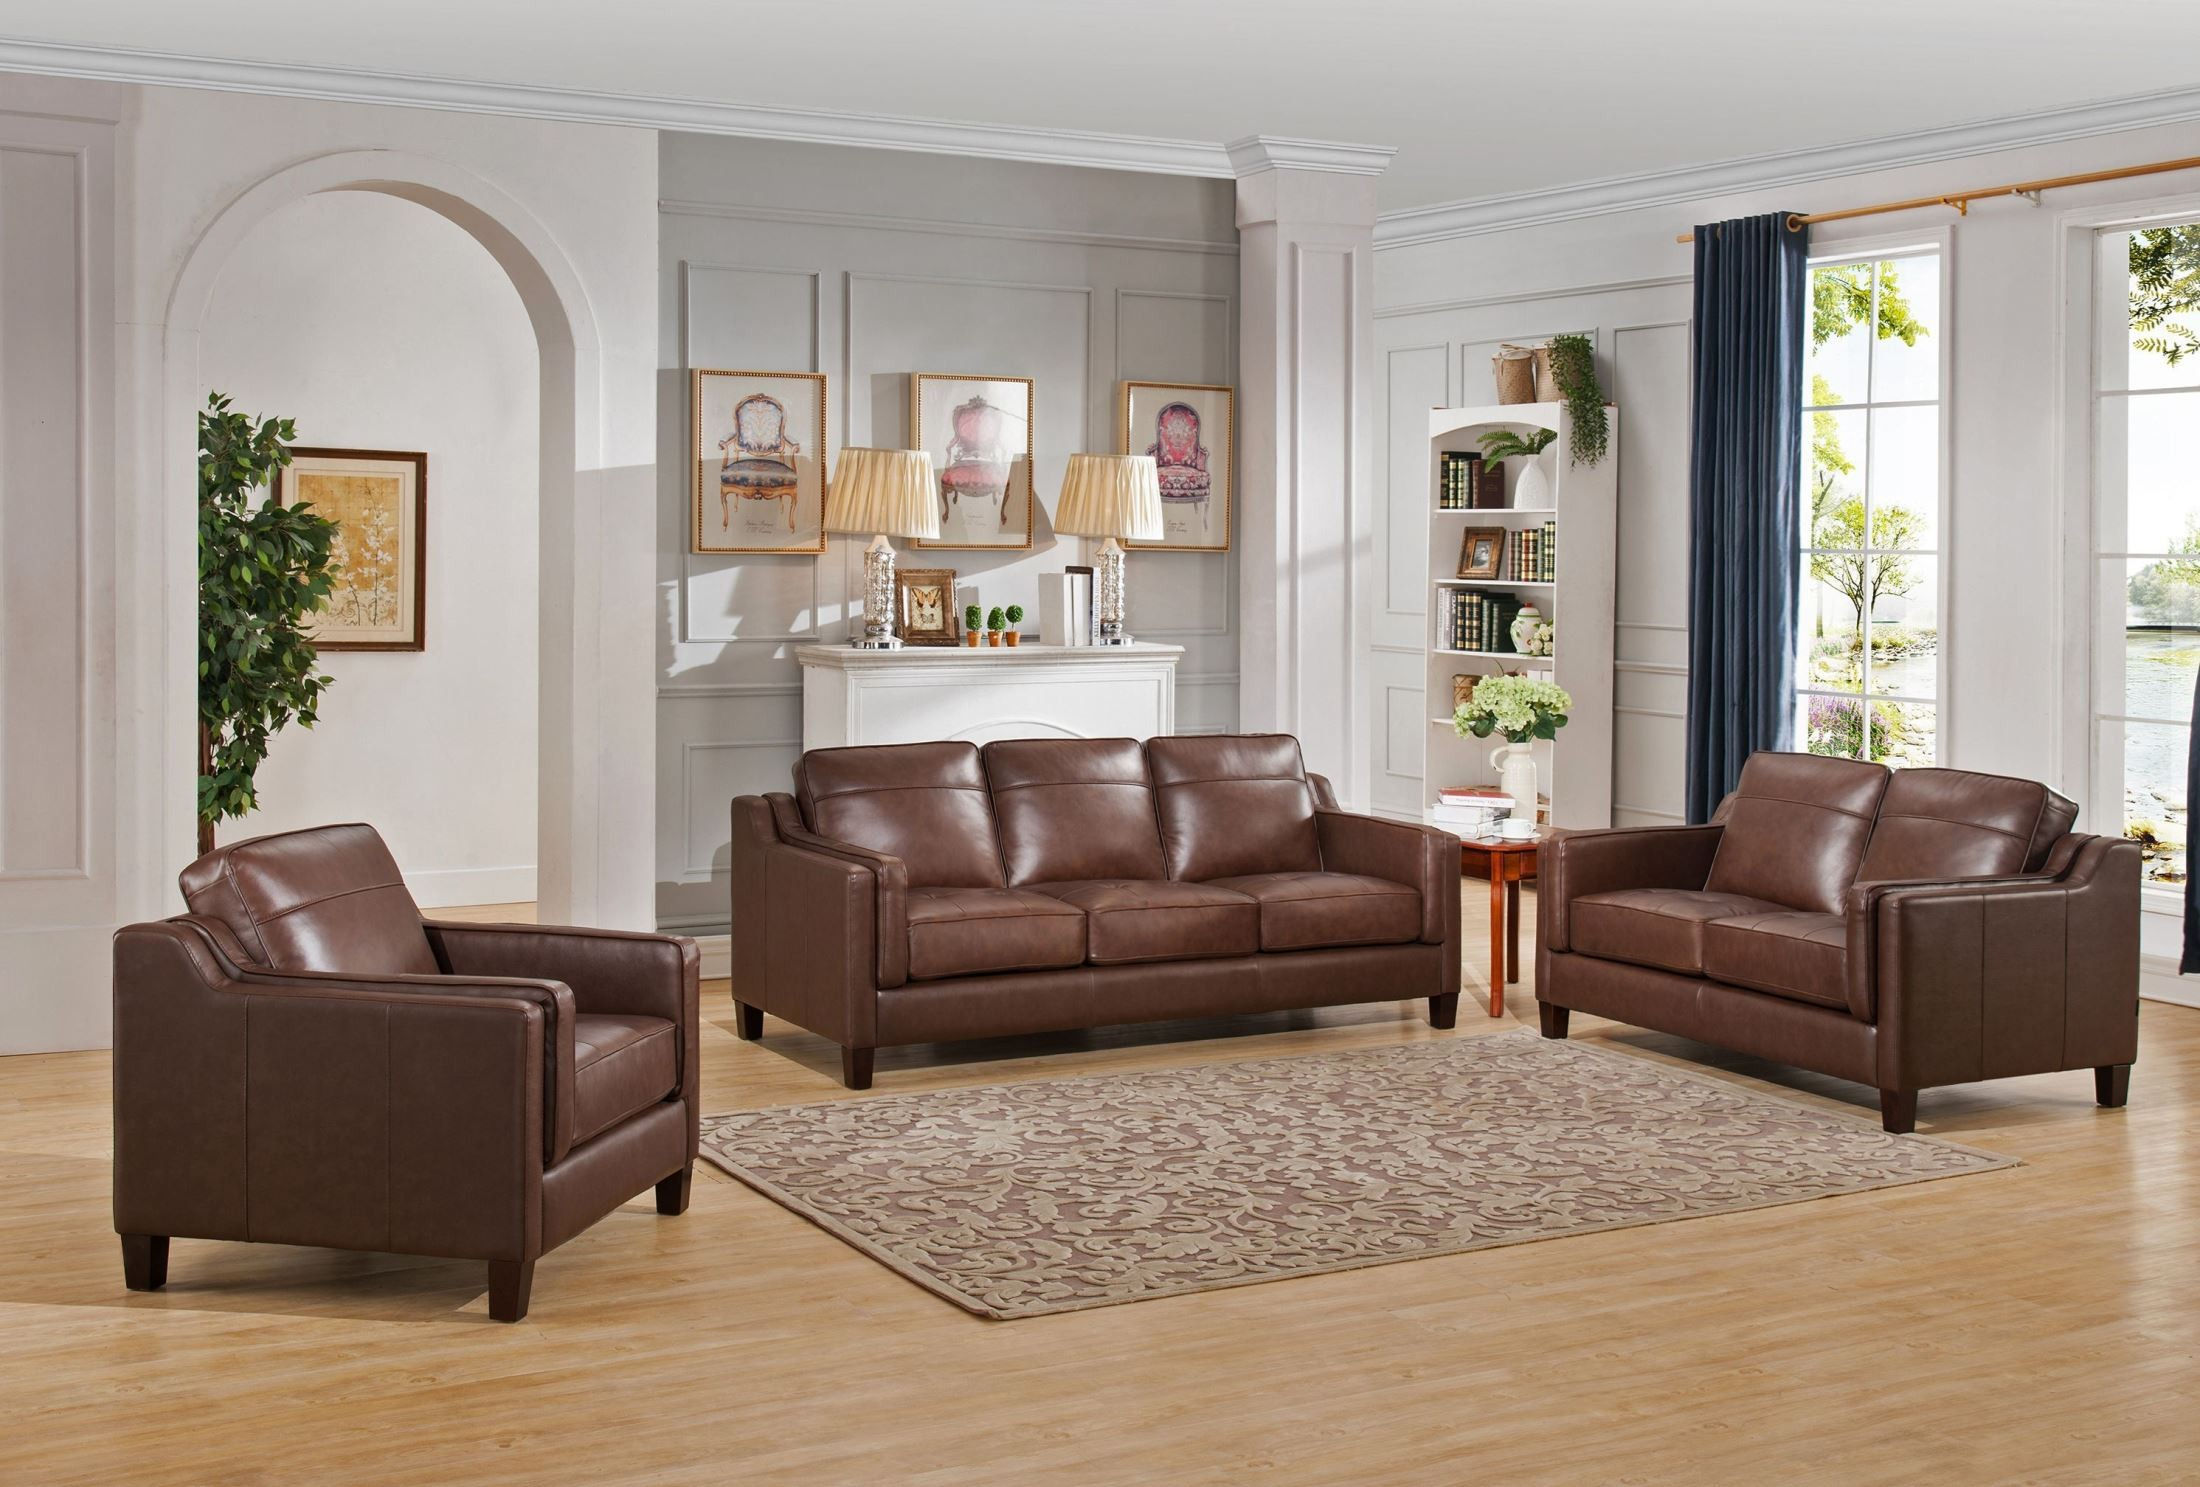 acorn brown 3 piece leather living room set from amax leather coleman furniture. Black Bedroom Furniture Sets. Home Design Ideas